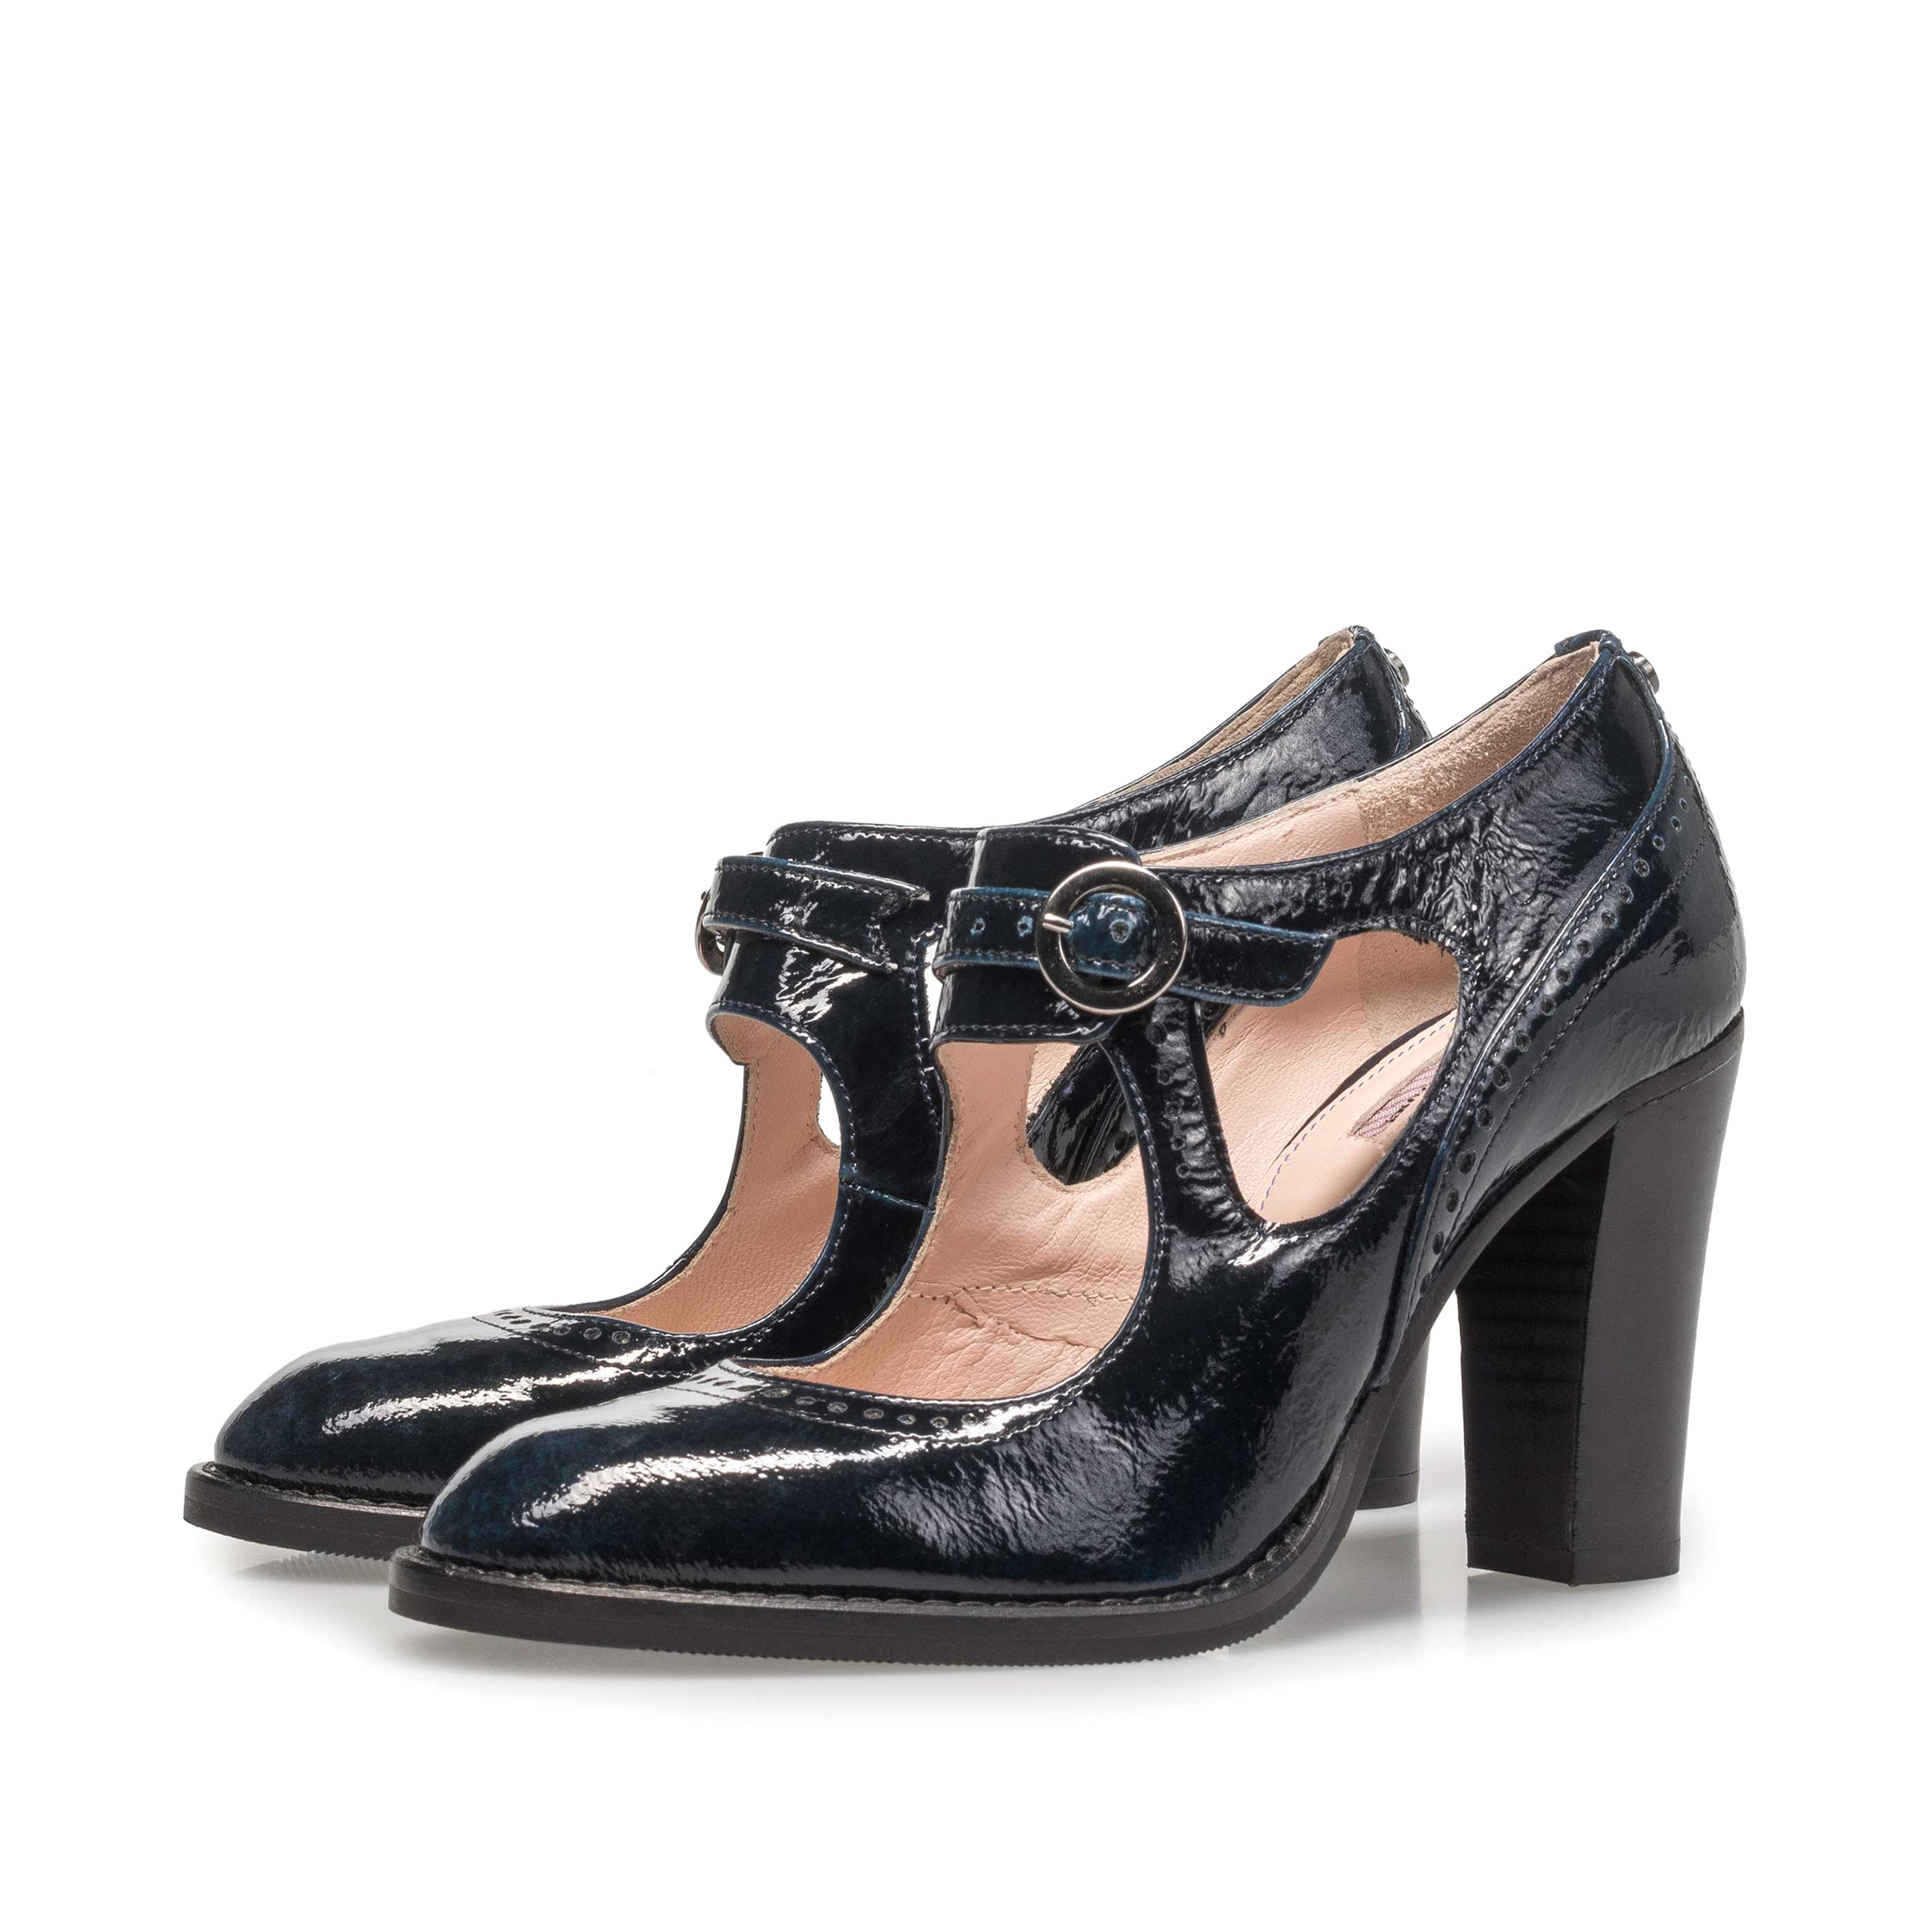 85532/01 - Blaue Lackleder-Pumps